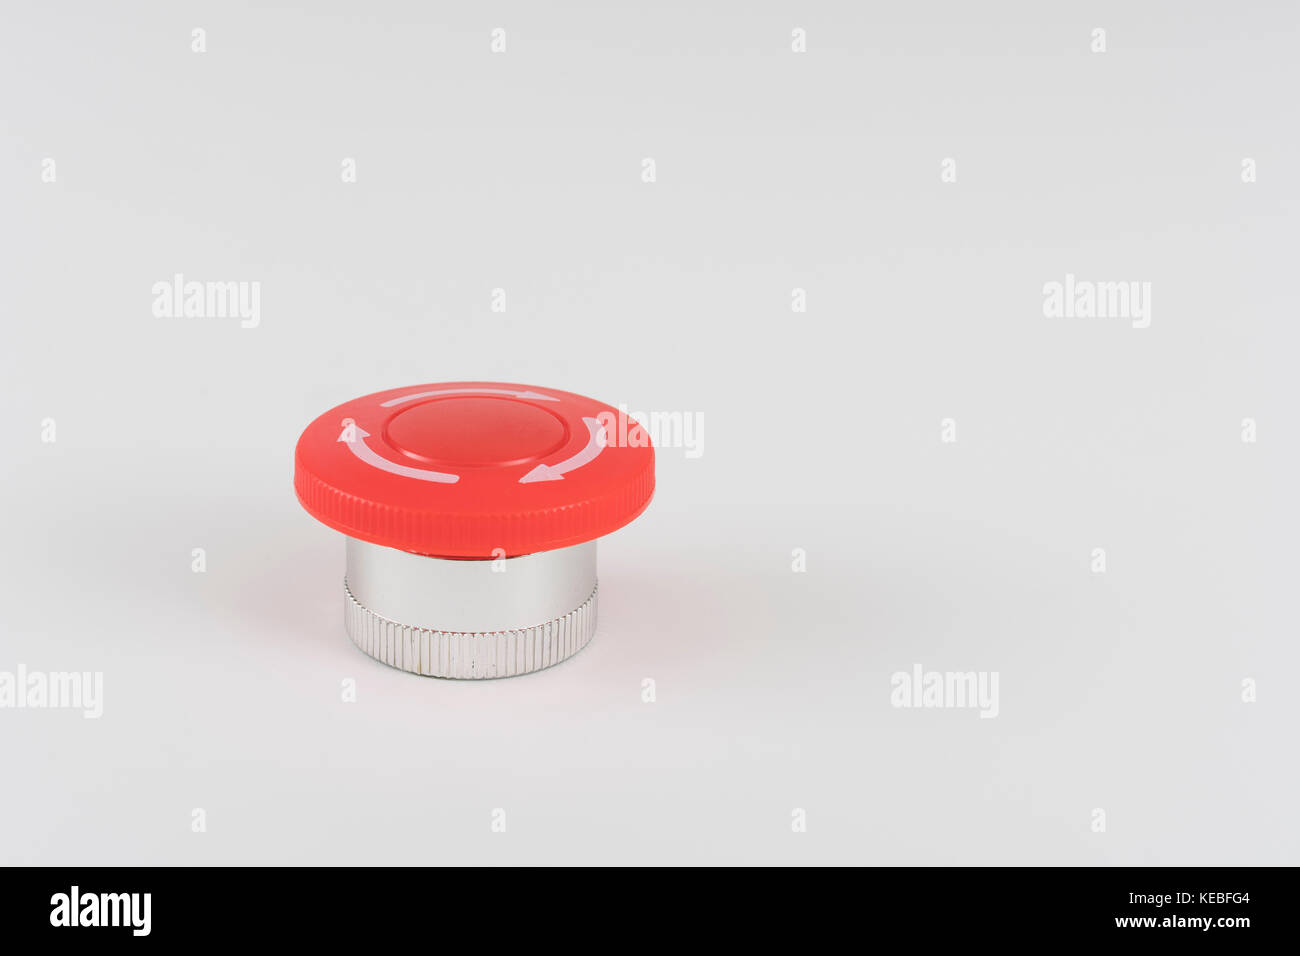 Big red button on light background - metaphor for Finger on the Button, possibly on nuclear button, & concept - Stock Image